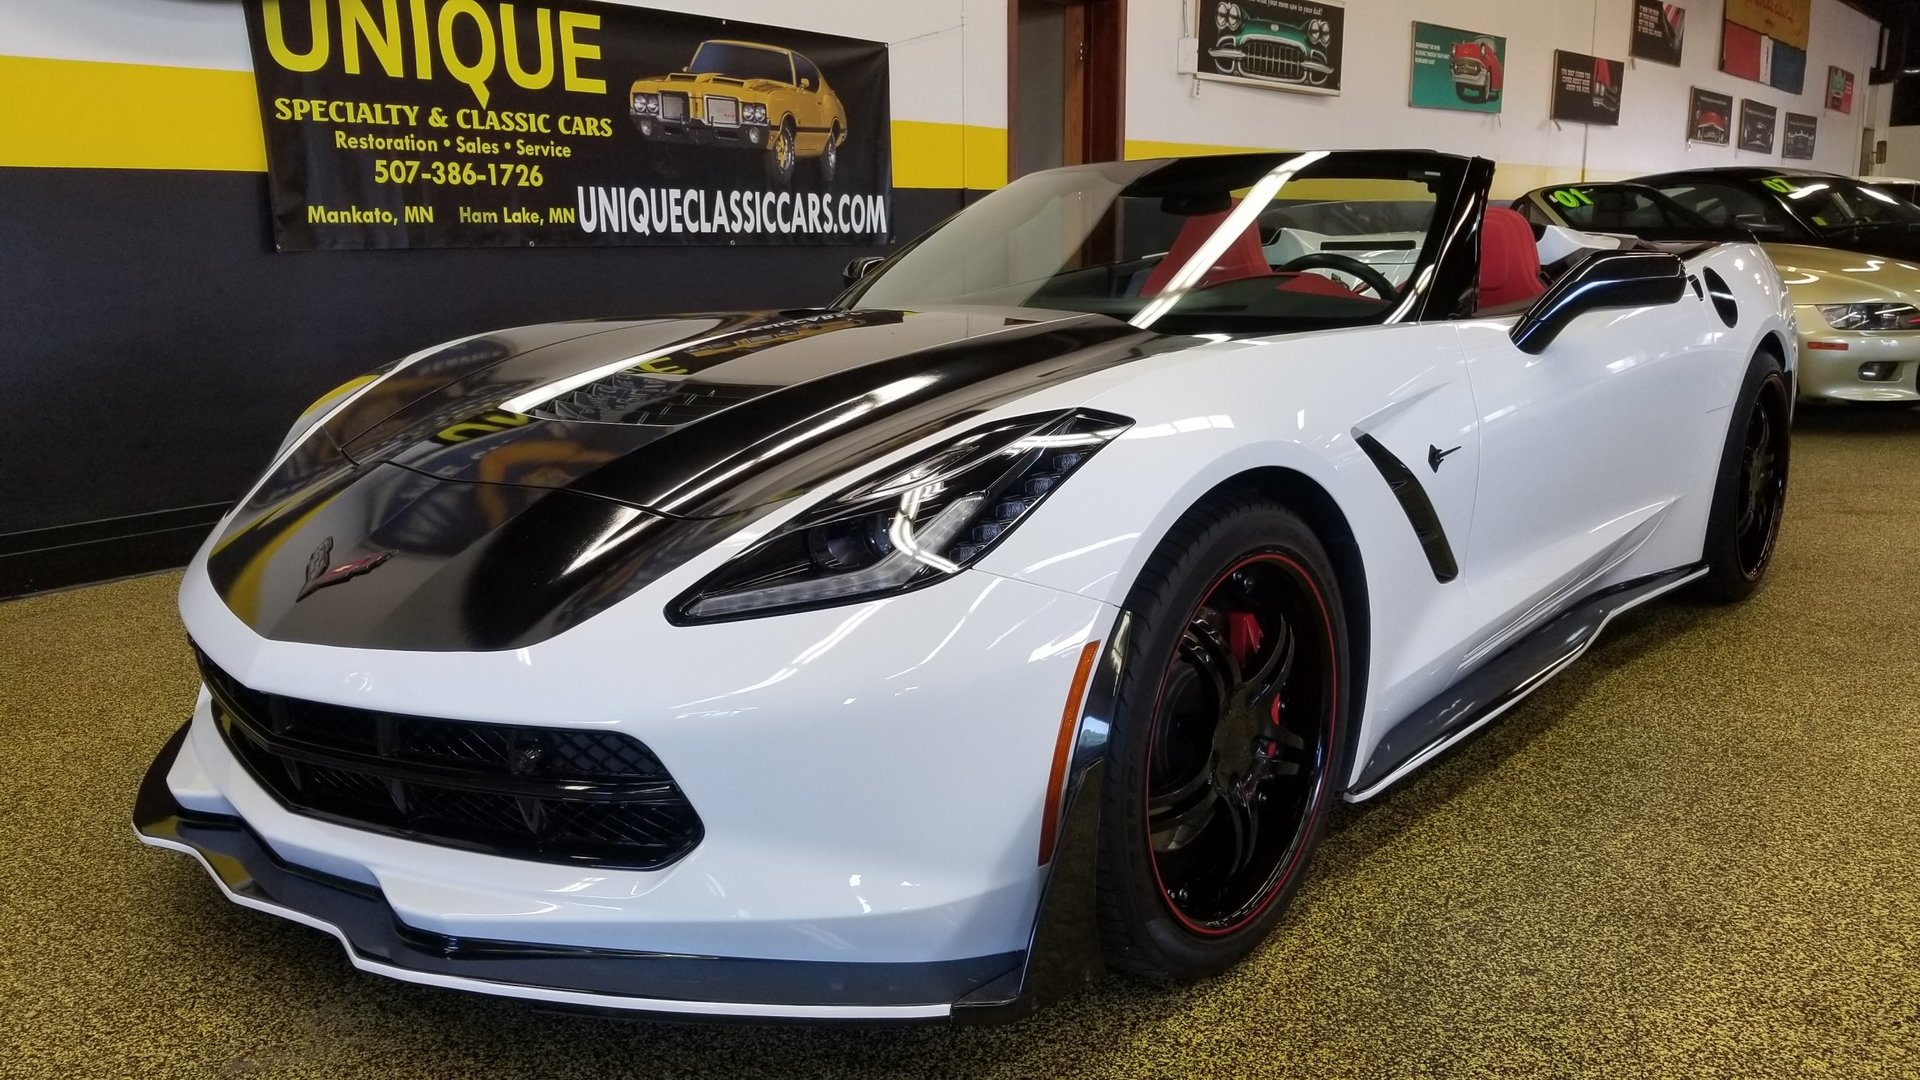 2016 chevrolet corvette stingray convertible 3lt for sale 89350 mcg. Black Bedroom Furniture Sets. Home Design Ideas